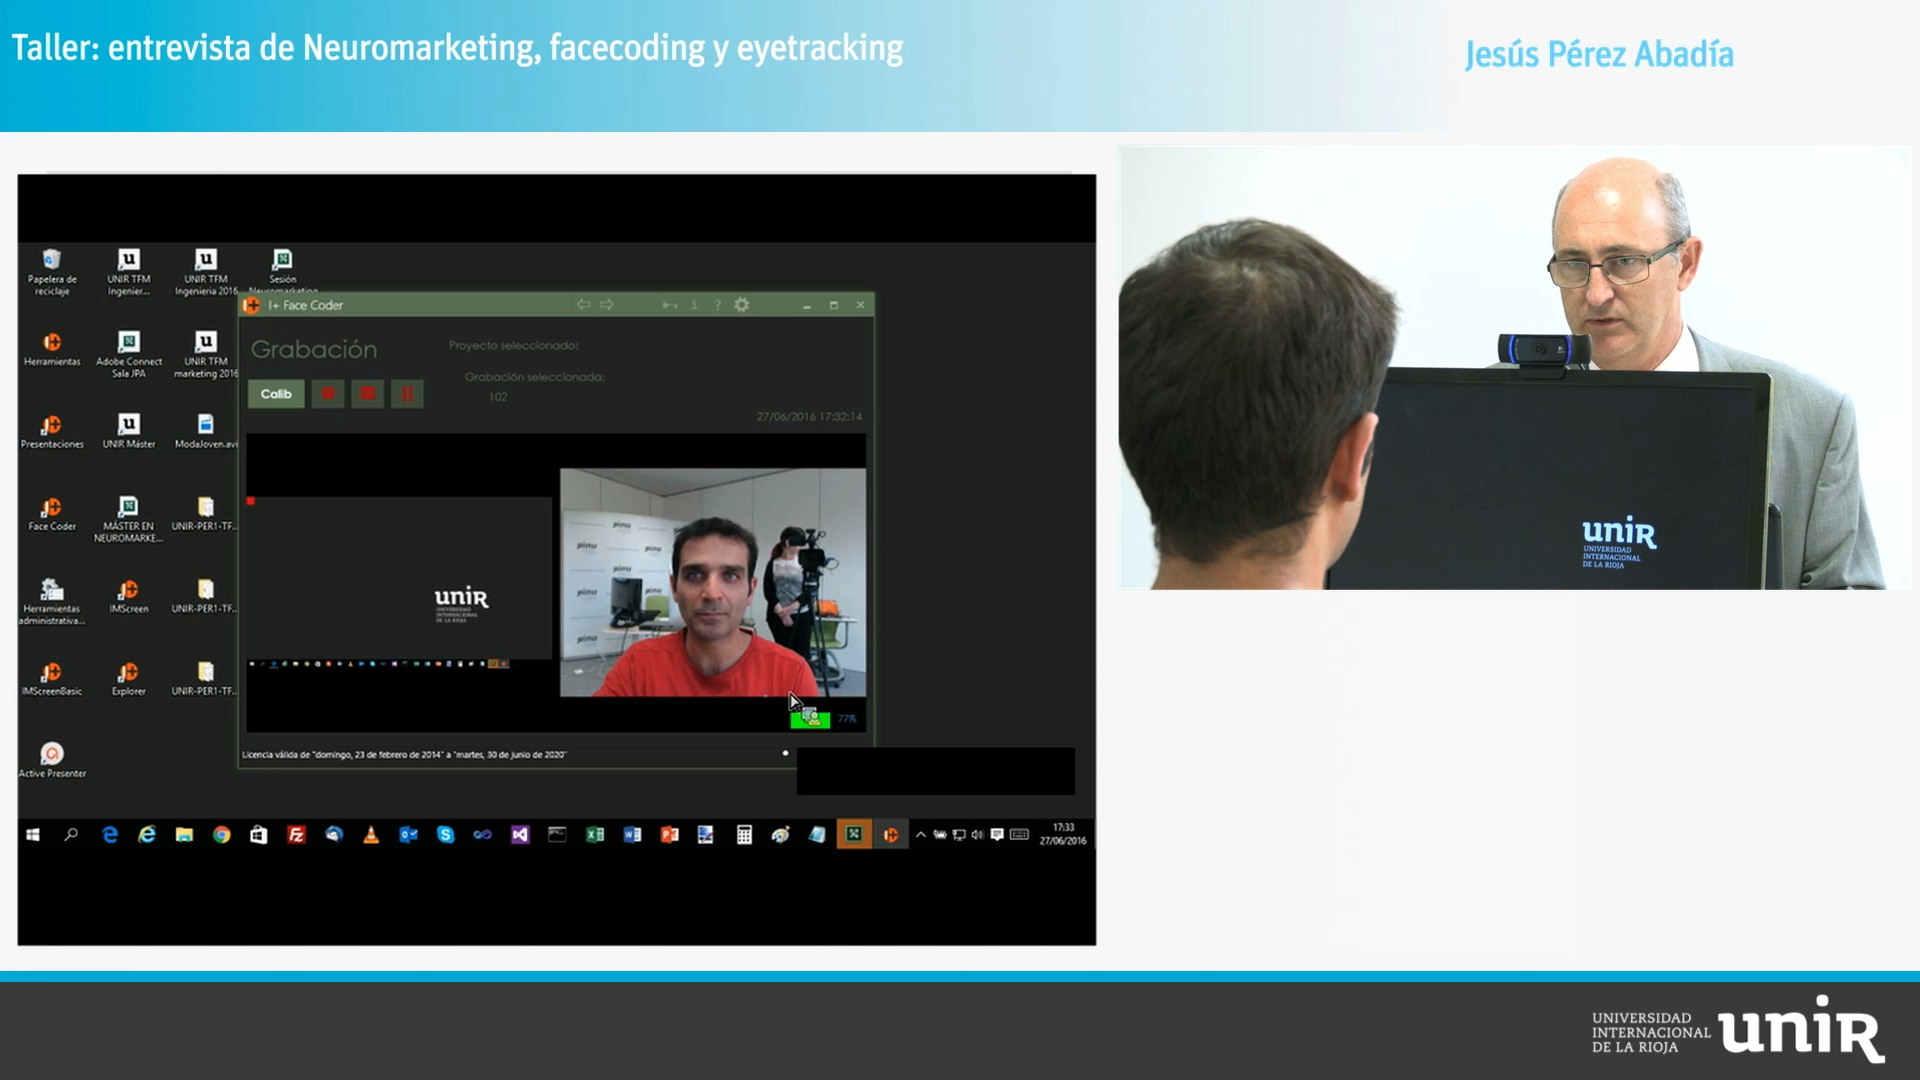 Taller-entrevista-de-Neuromarketing-facecoding-y-eyetracking